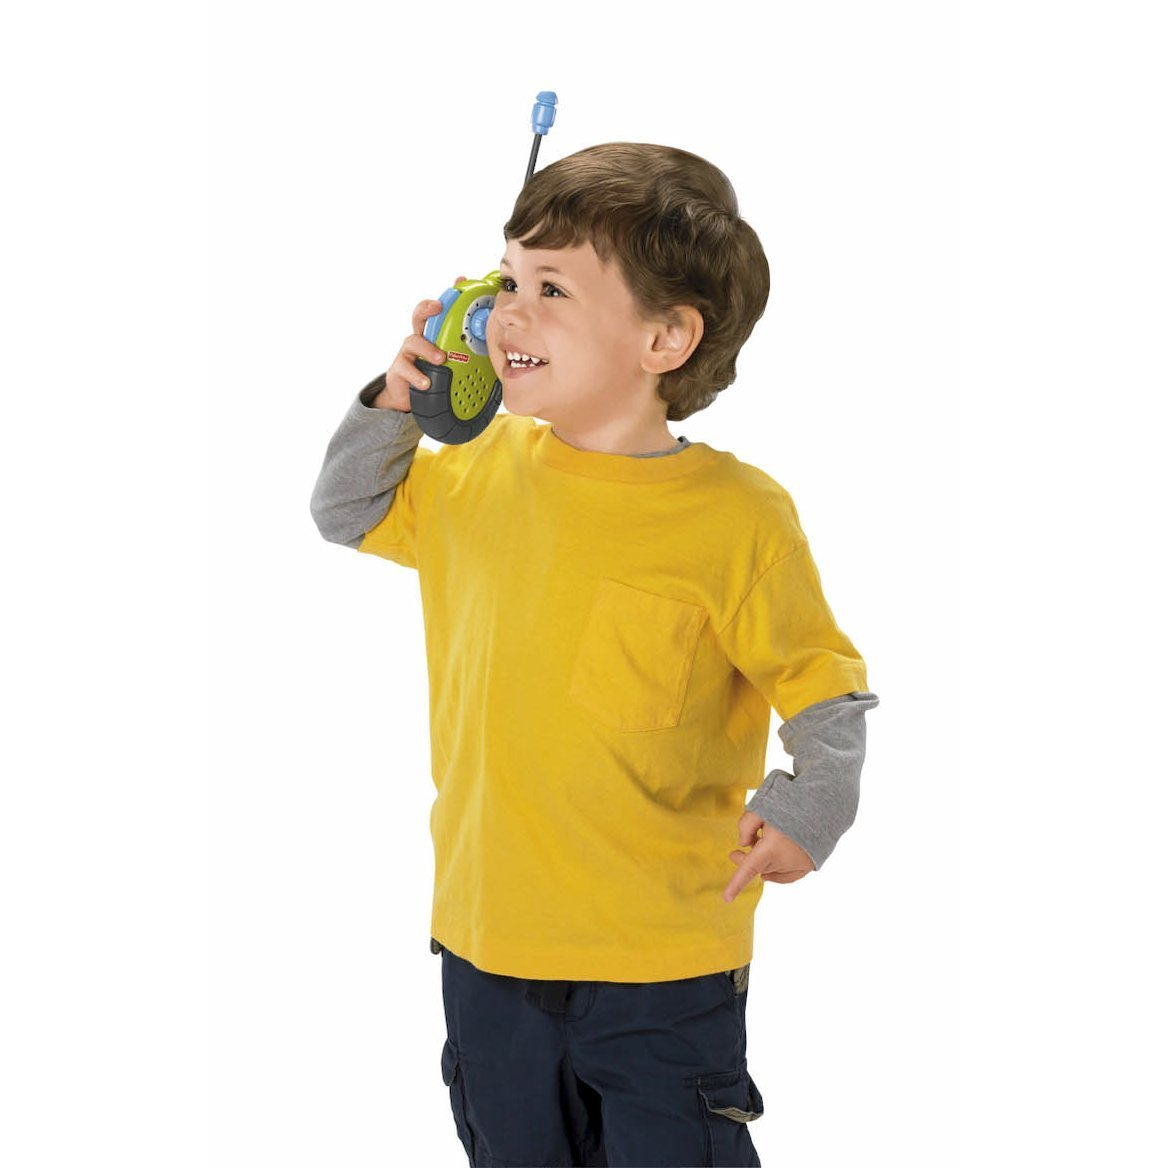 Best walkie talkie for your child